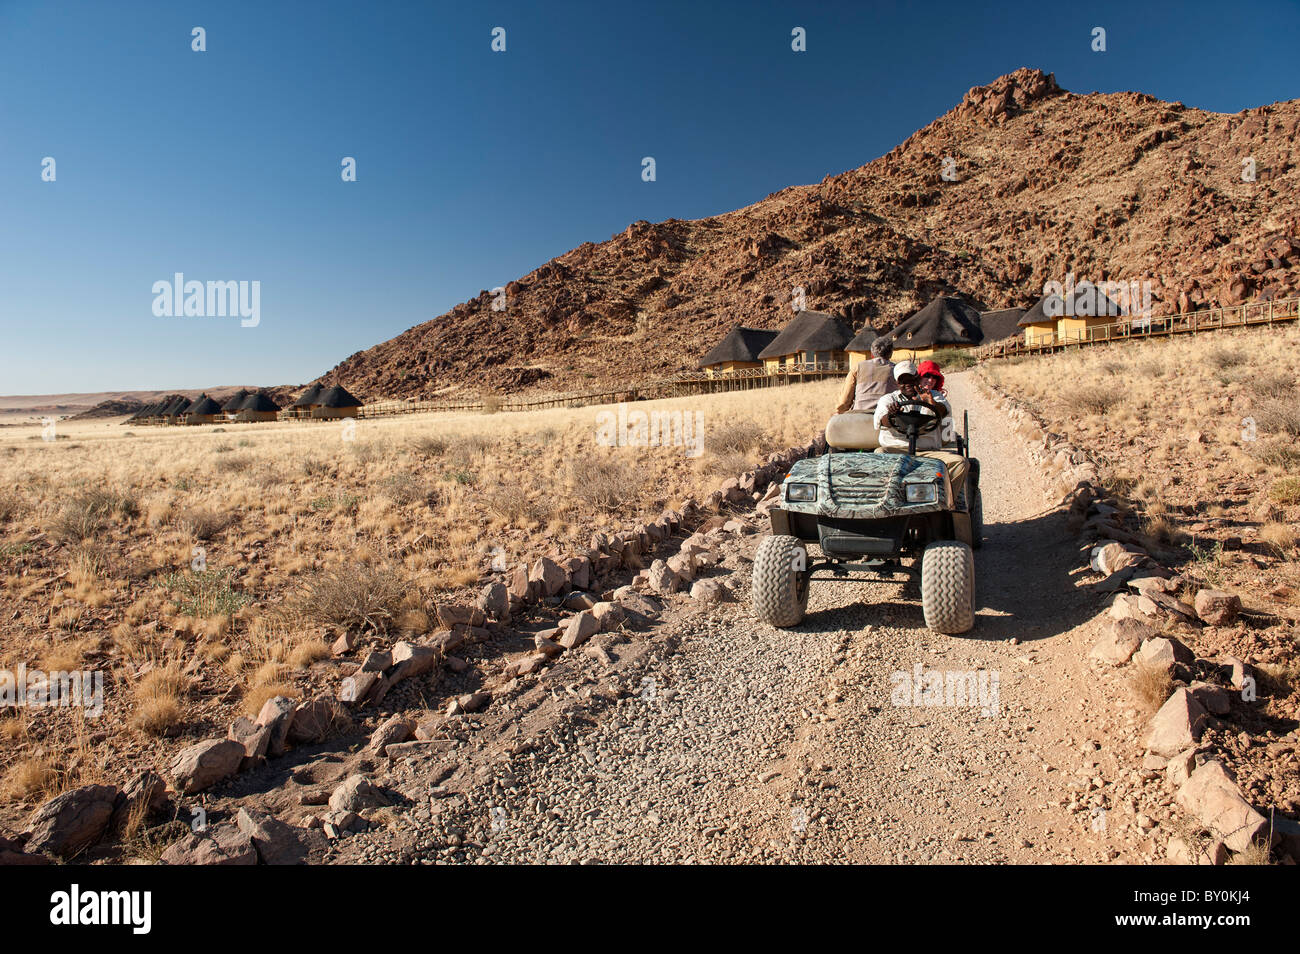 Sossus Dune Lodge within Namib-Naukluft Park in central Namibia.  Rugged golf carts transfer visitors between vehicles - Stock Image